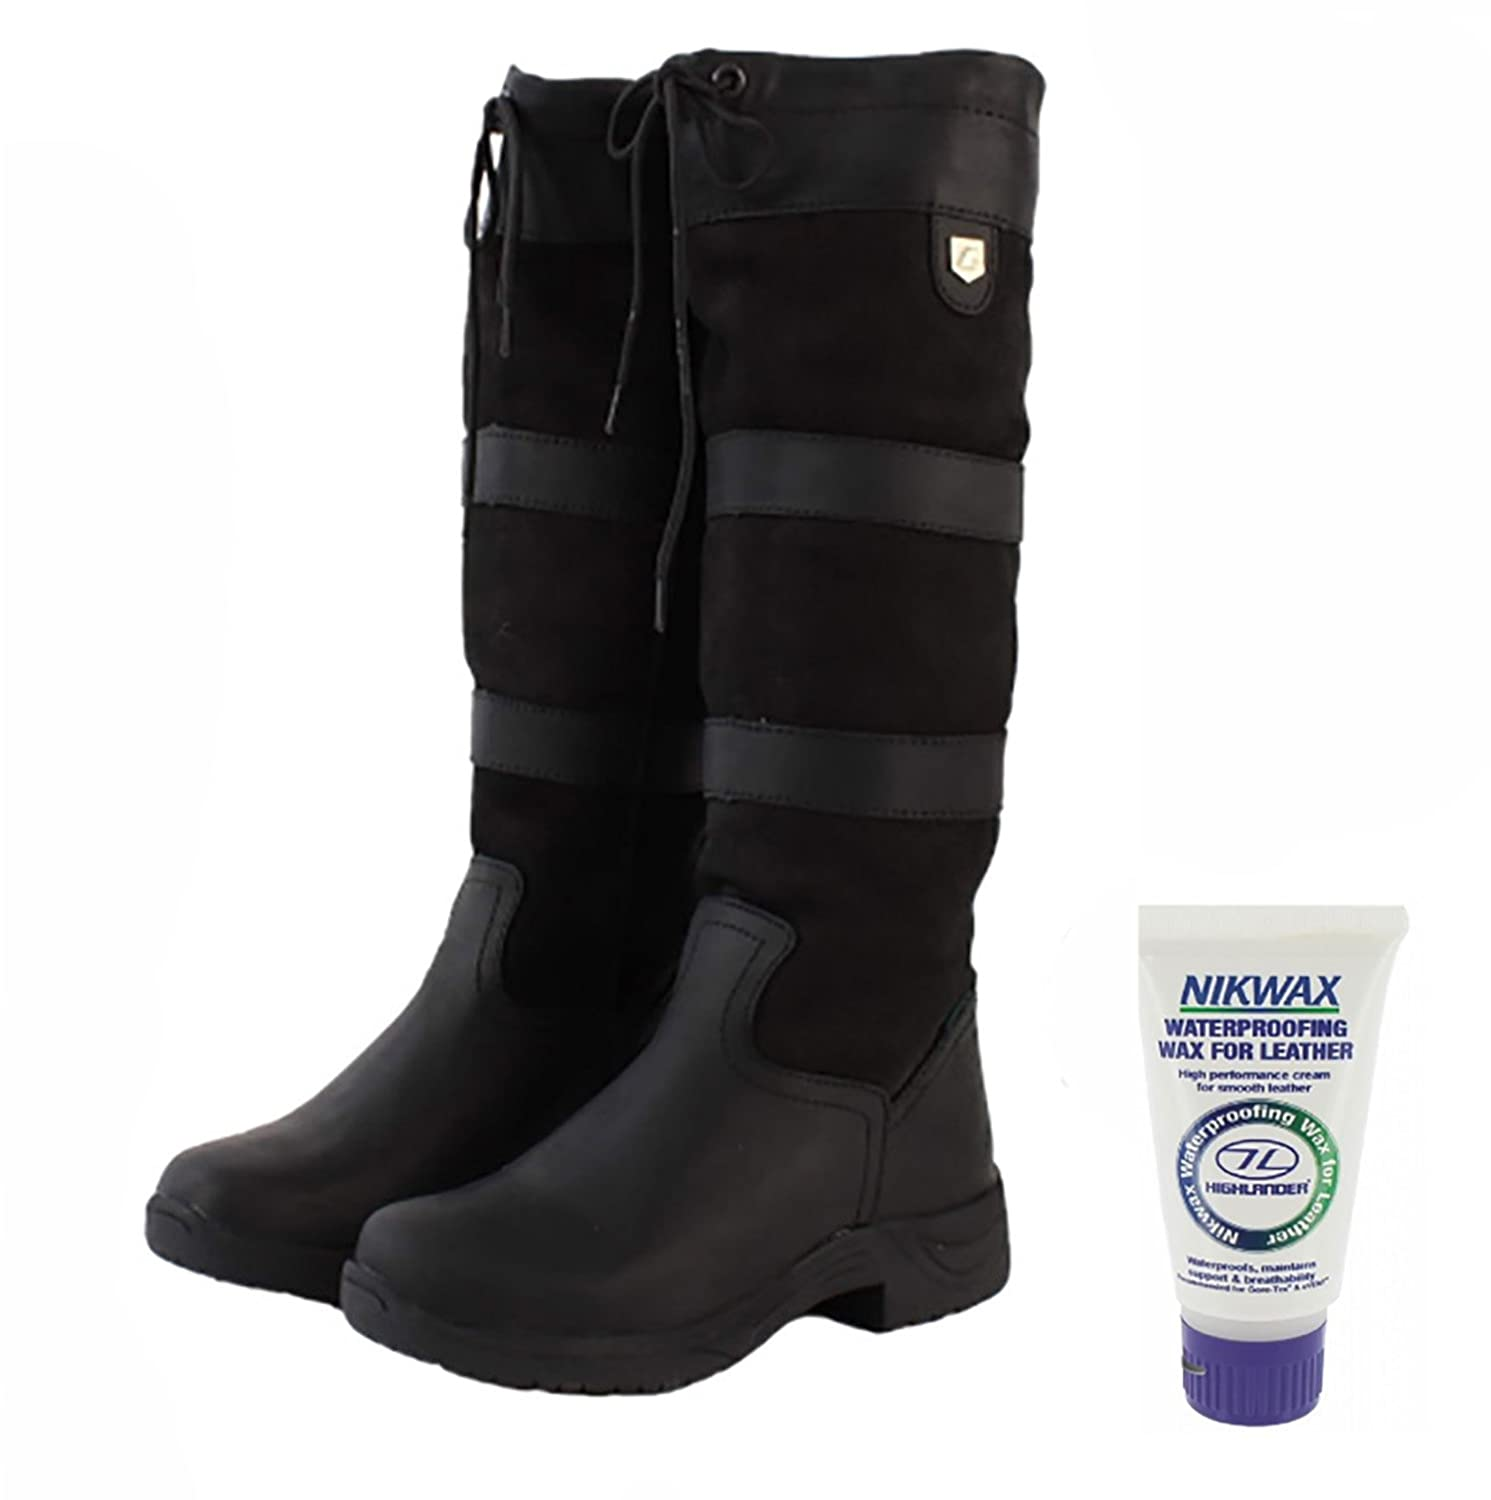 def54b9c6e3 Dublin Waterproof Leather Country River Boots - FREE NIKWAX GIFT  Sizes/Widths